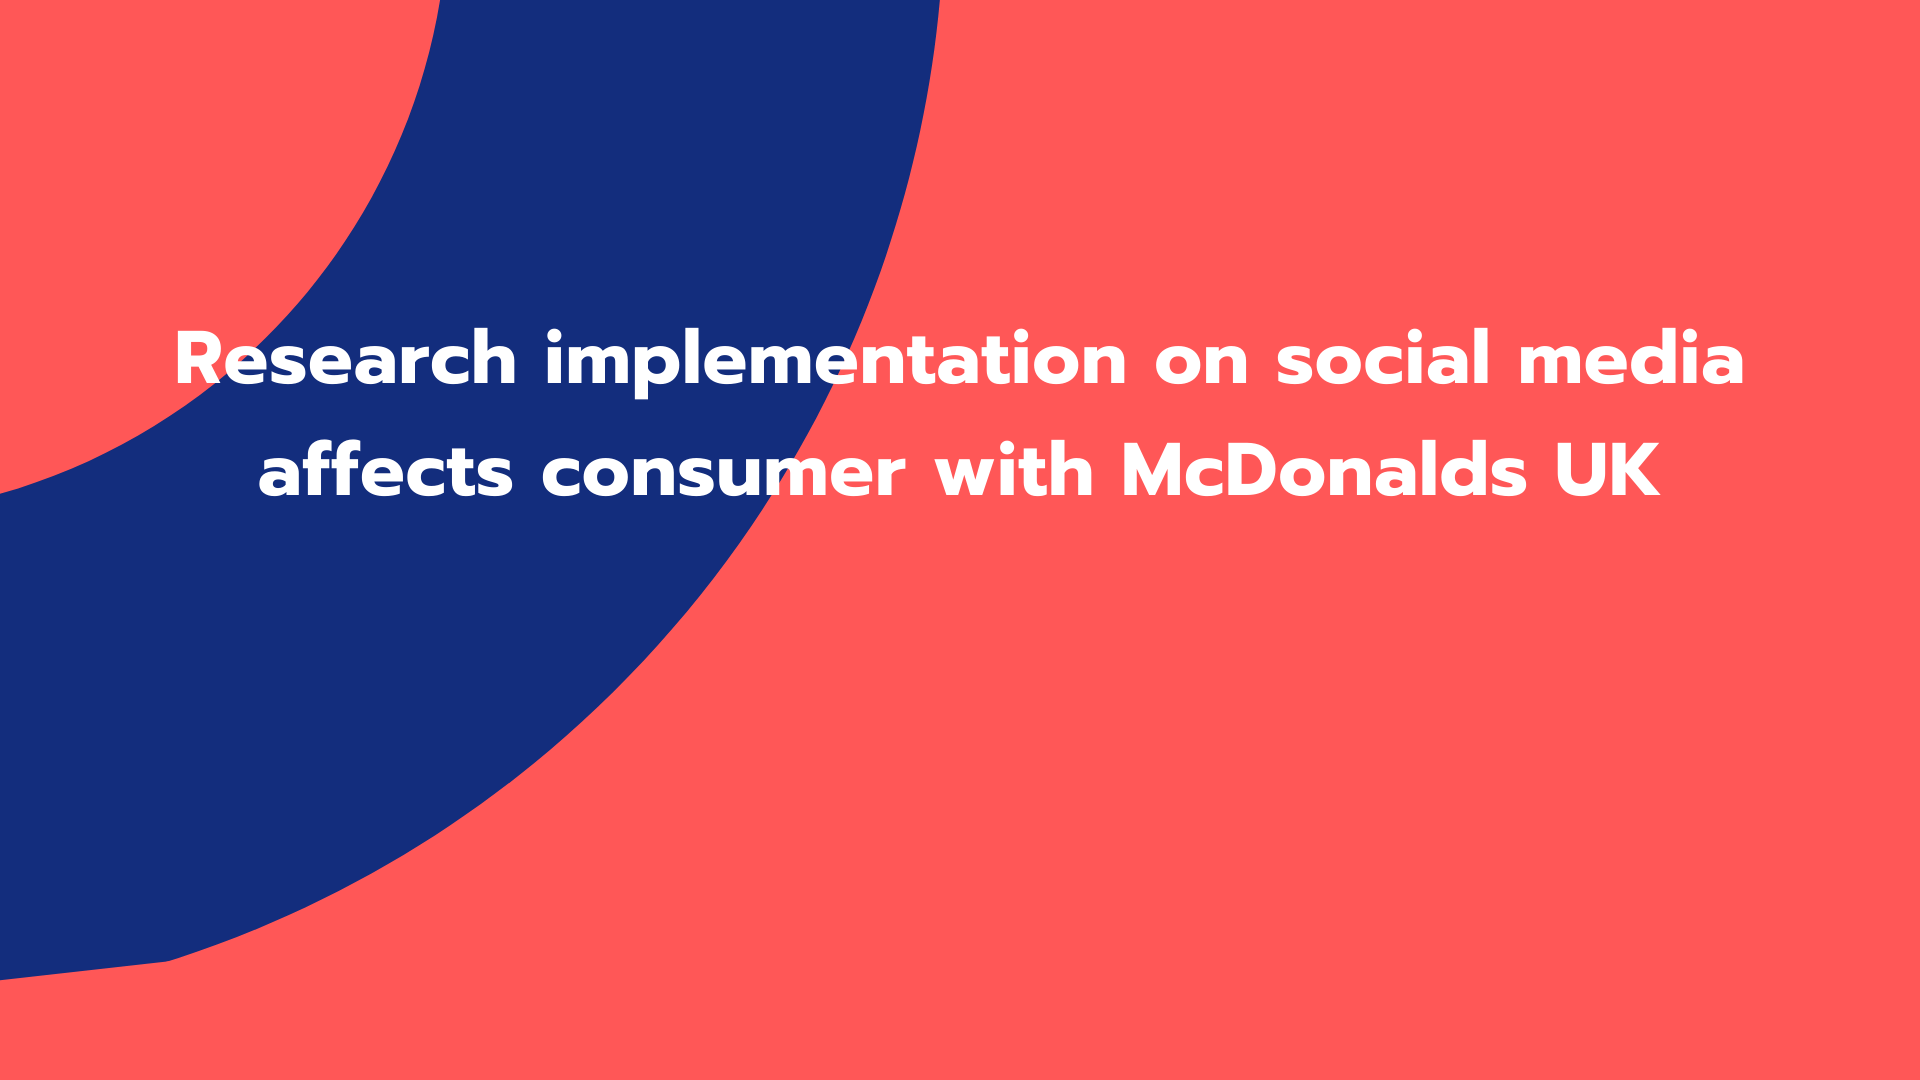 Research implementation on social media affects consumer with McDonalds UK